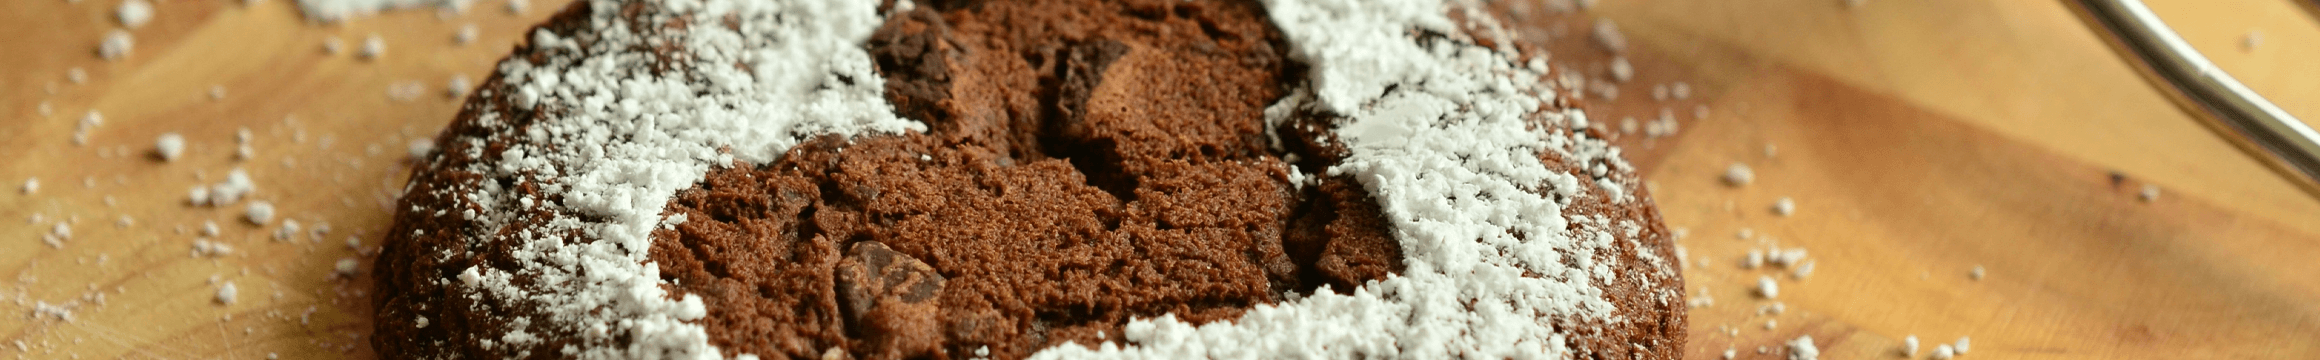 Chocolate Cookie1